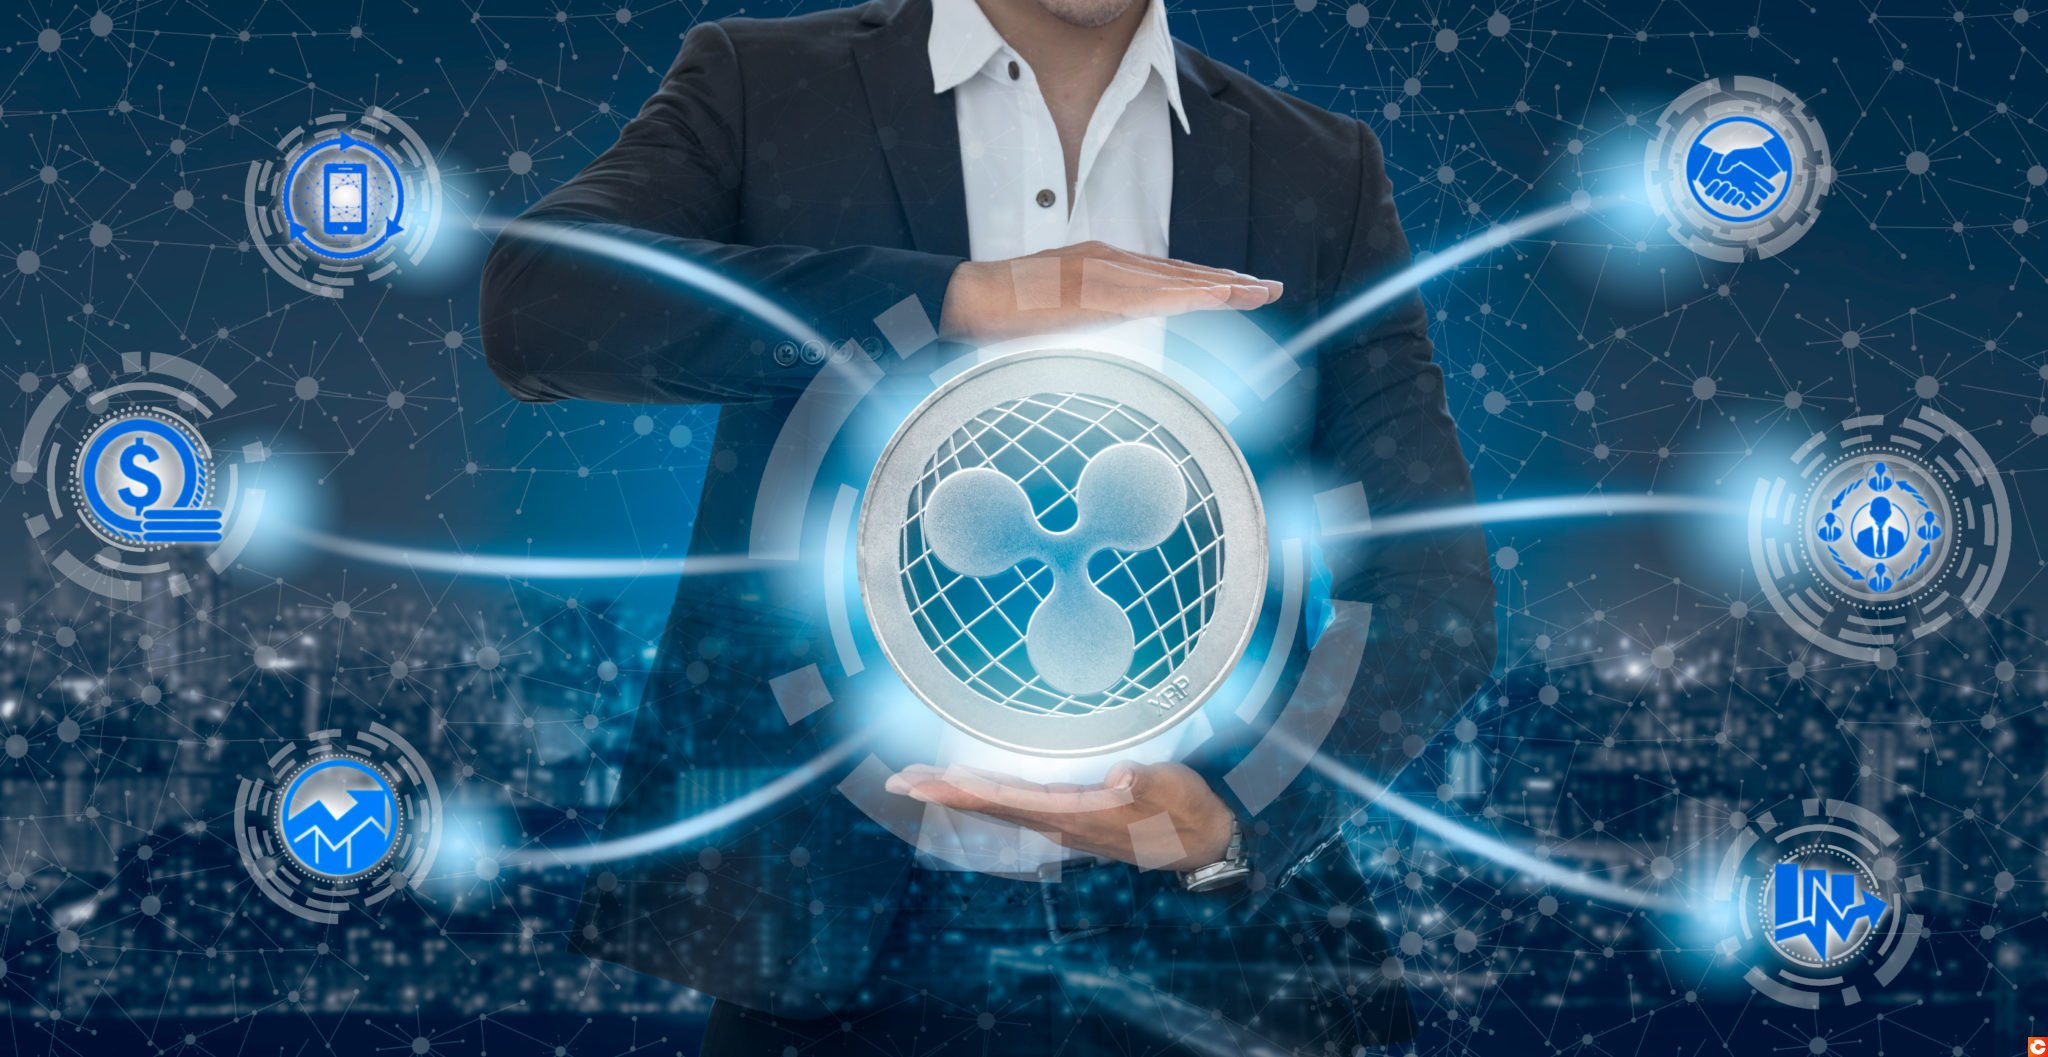 Ripple and cryptocurrency investing concept - Businessman holding Ripple (XRP) with mobile application business icons showing exchanging, trading, transfer and investment of blockchain technology.